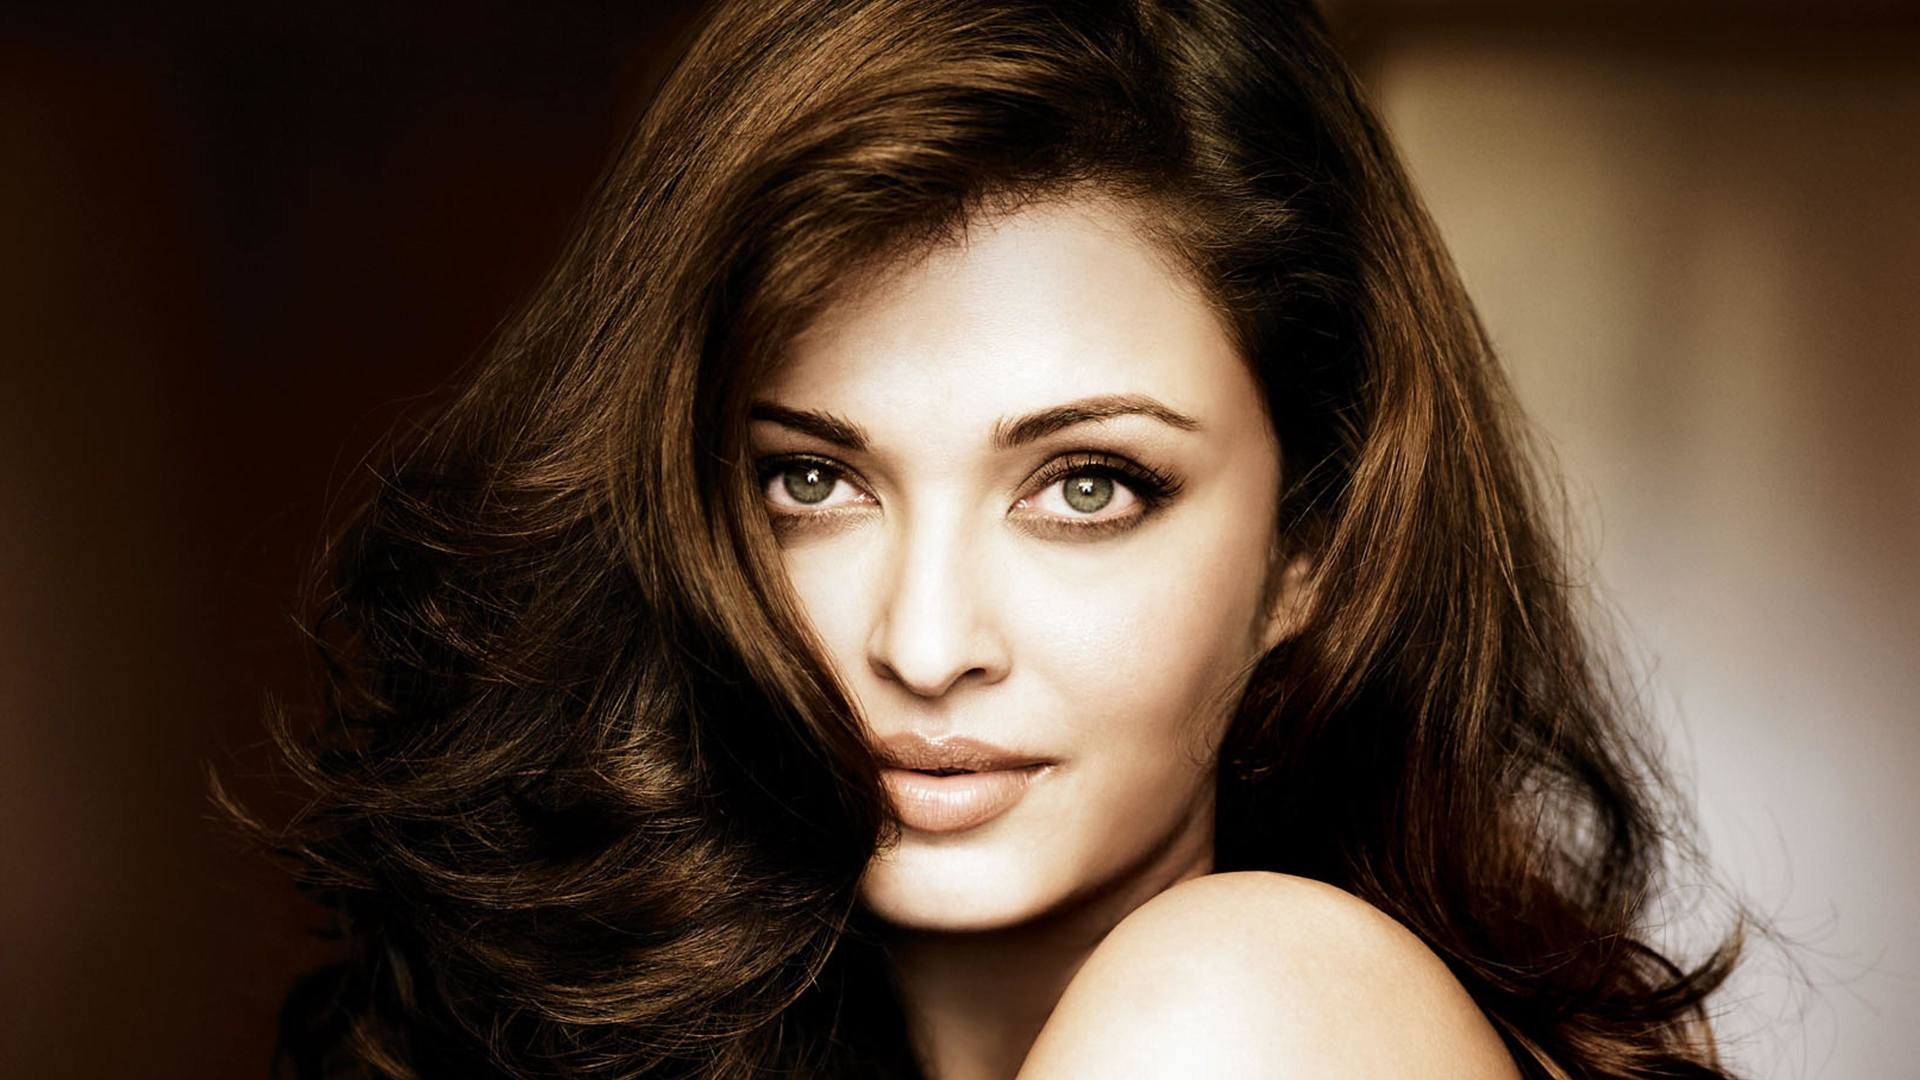 aishwarya_rai-wallpaper_2147483676